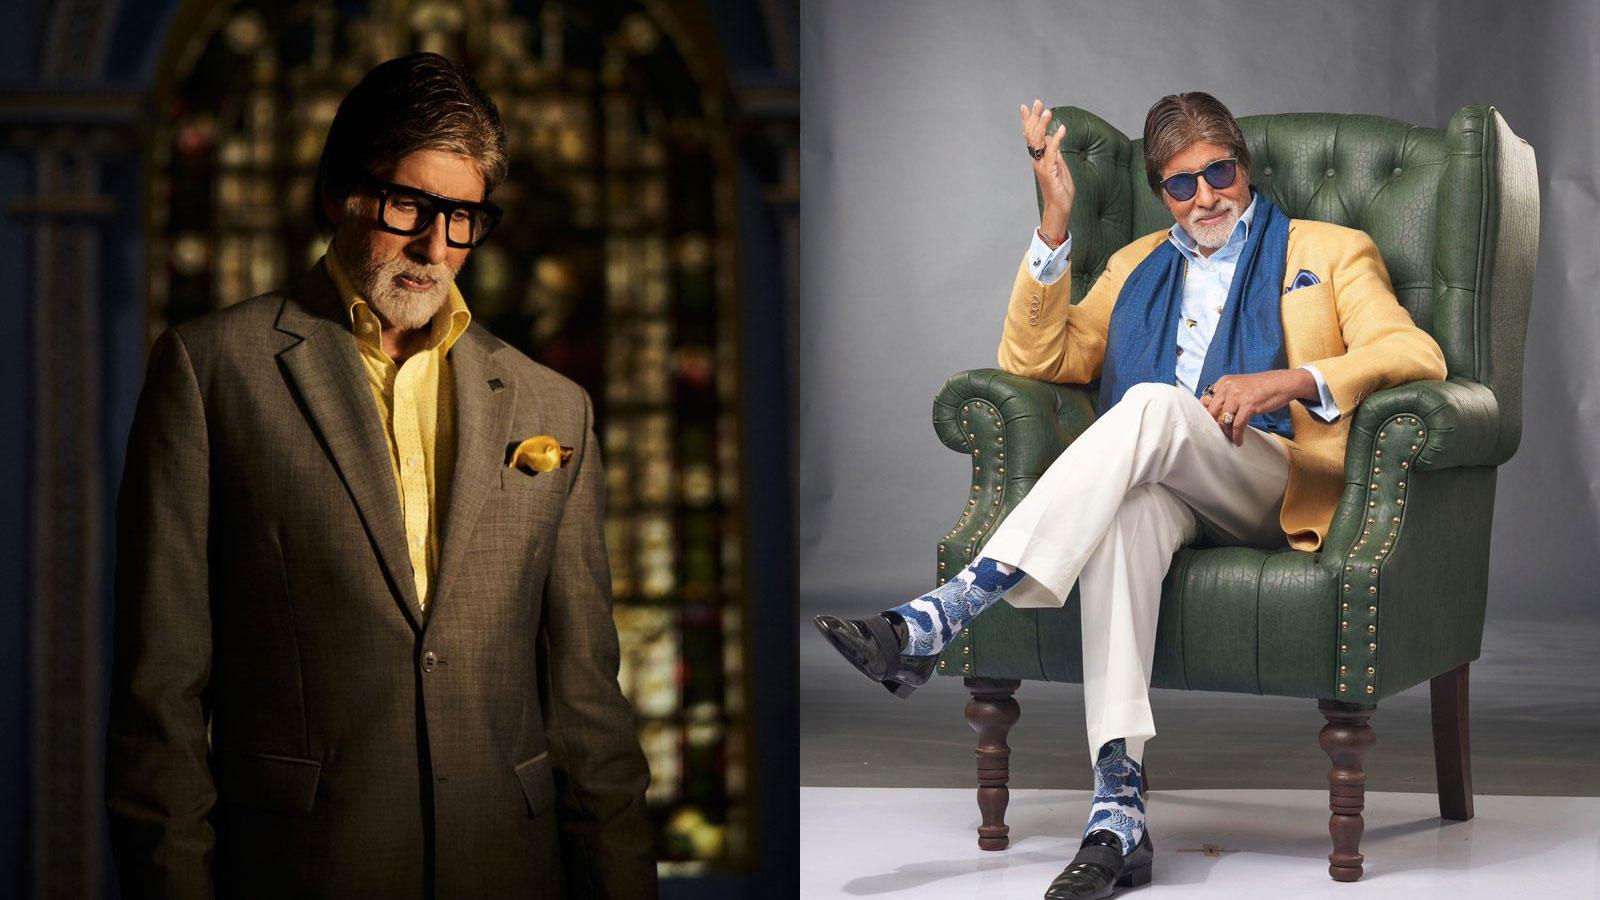 Amitabh Bachchan faces flak on Twitter for saying 'Metro is the solution for pollution'